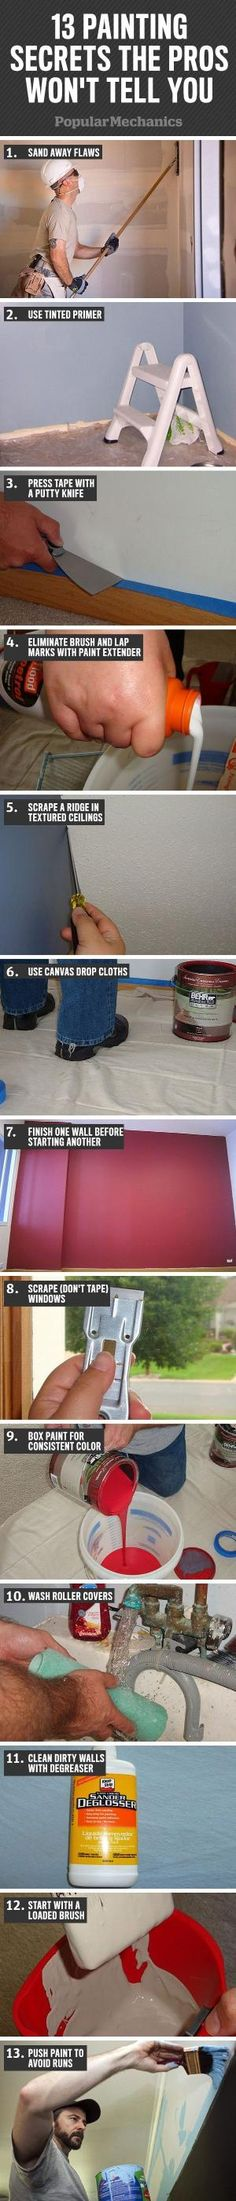 Each painter has slightly different methods and preferences, but the pros all…